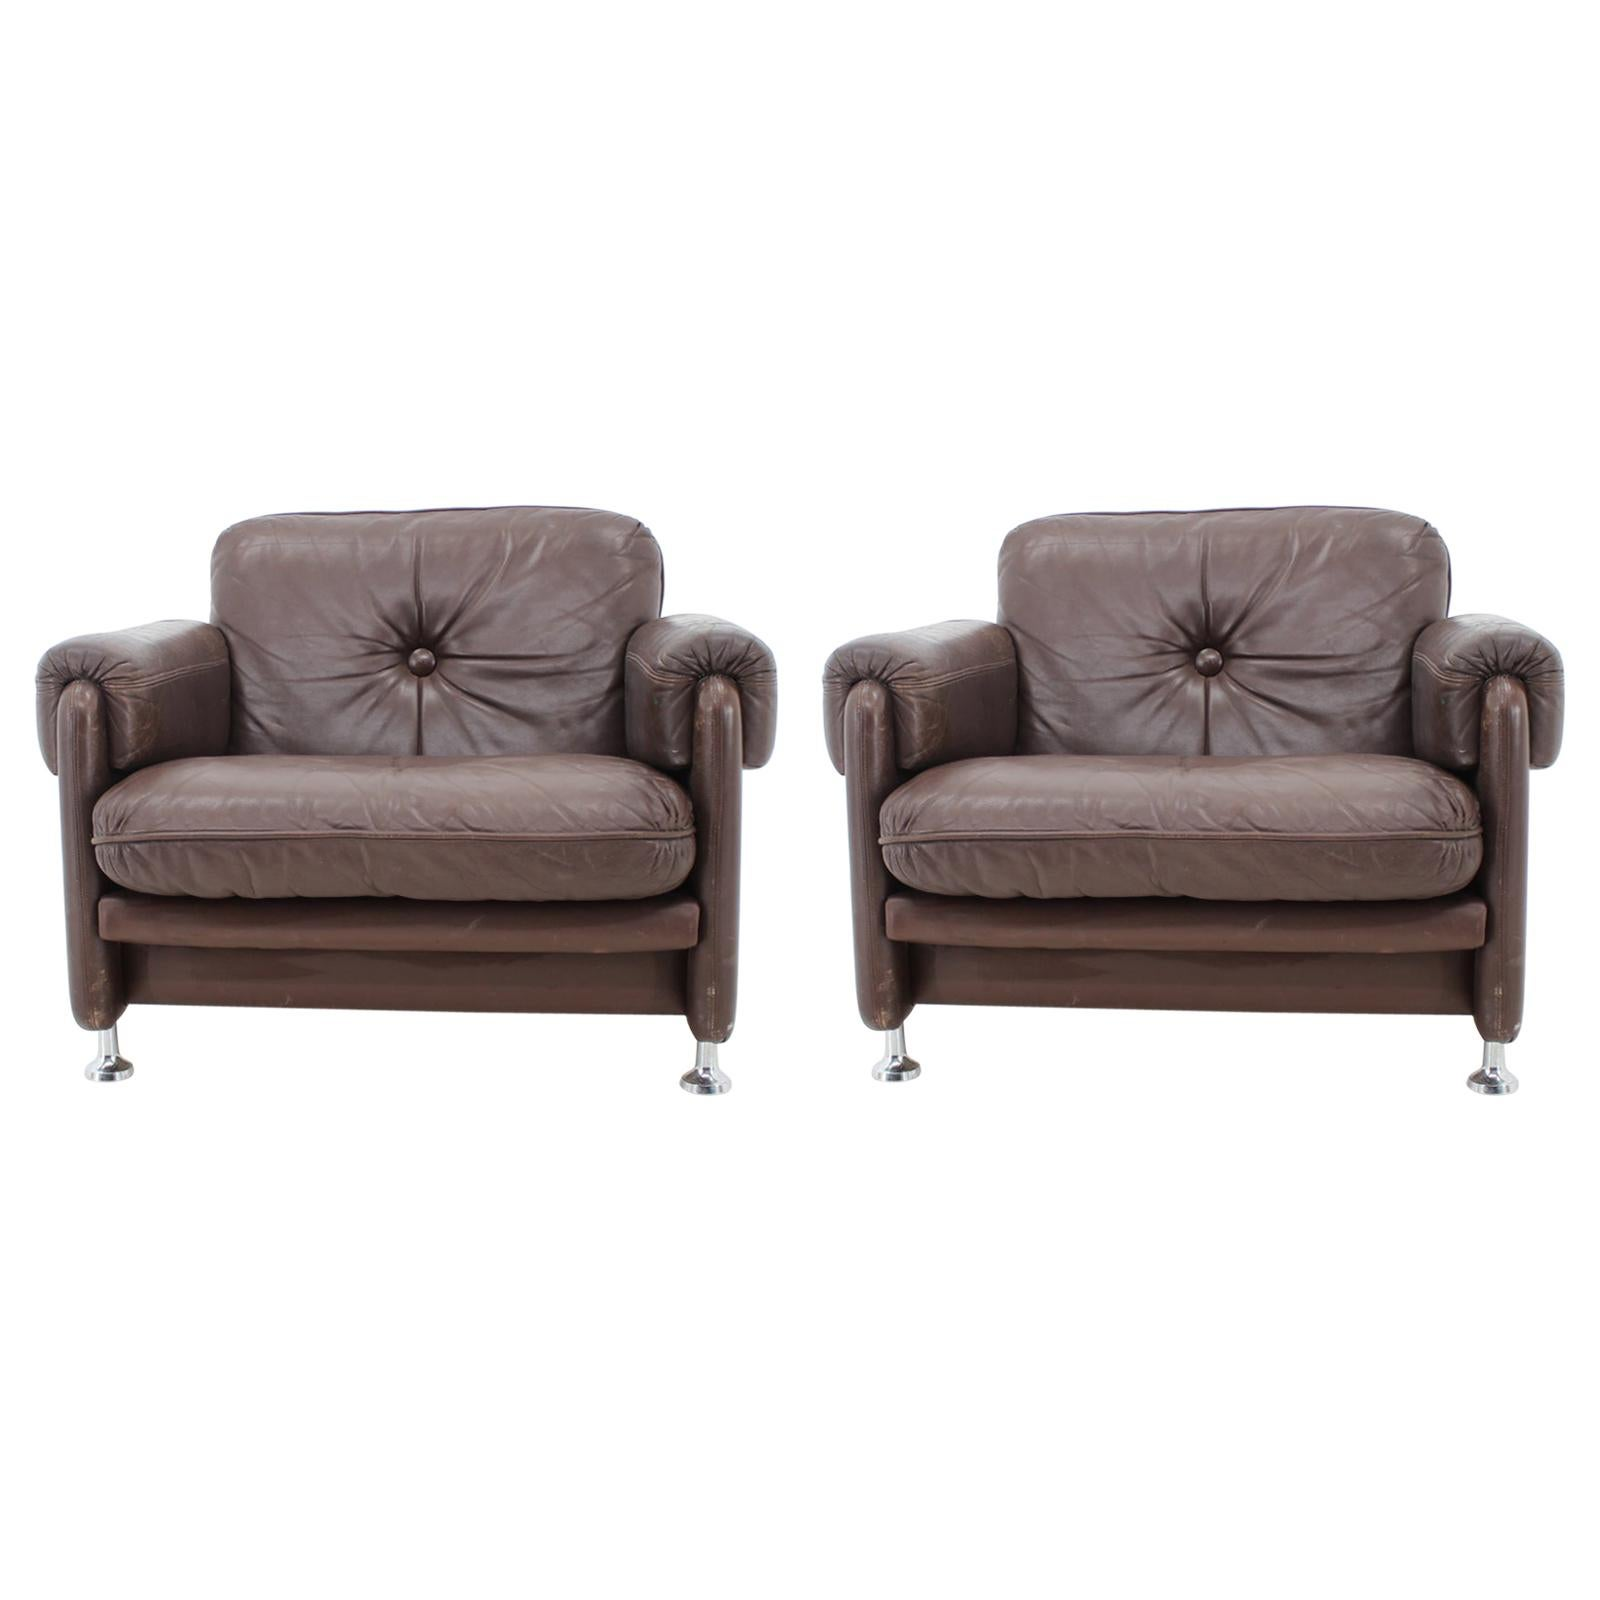 Pair of Scandinavian Leather Armchairs for MYRSKYLÄ OY, Finland, 1960s